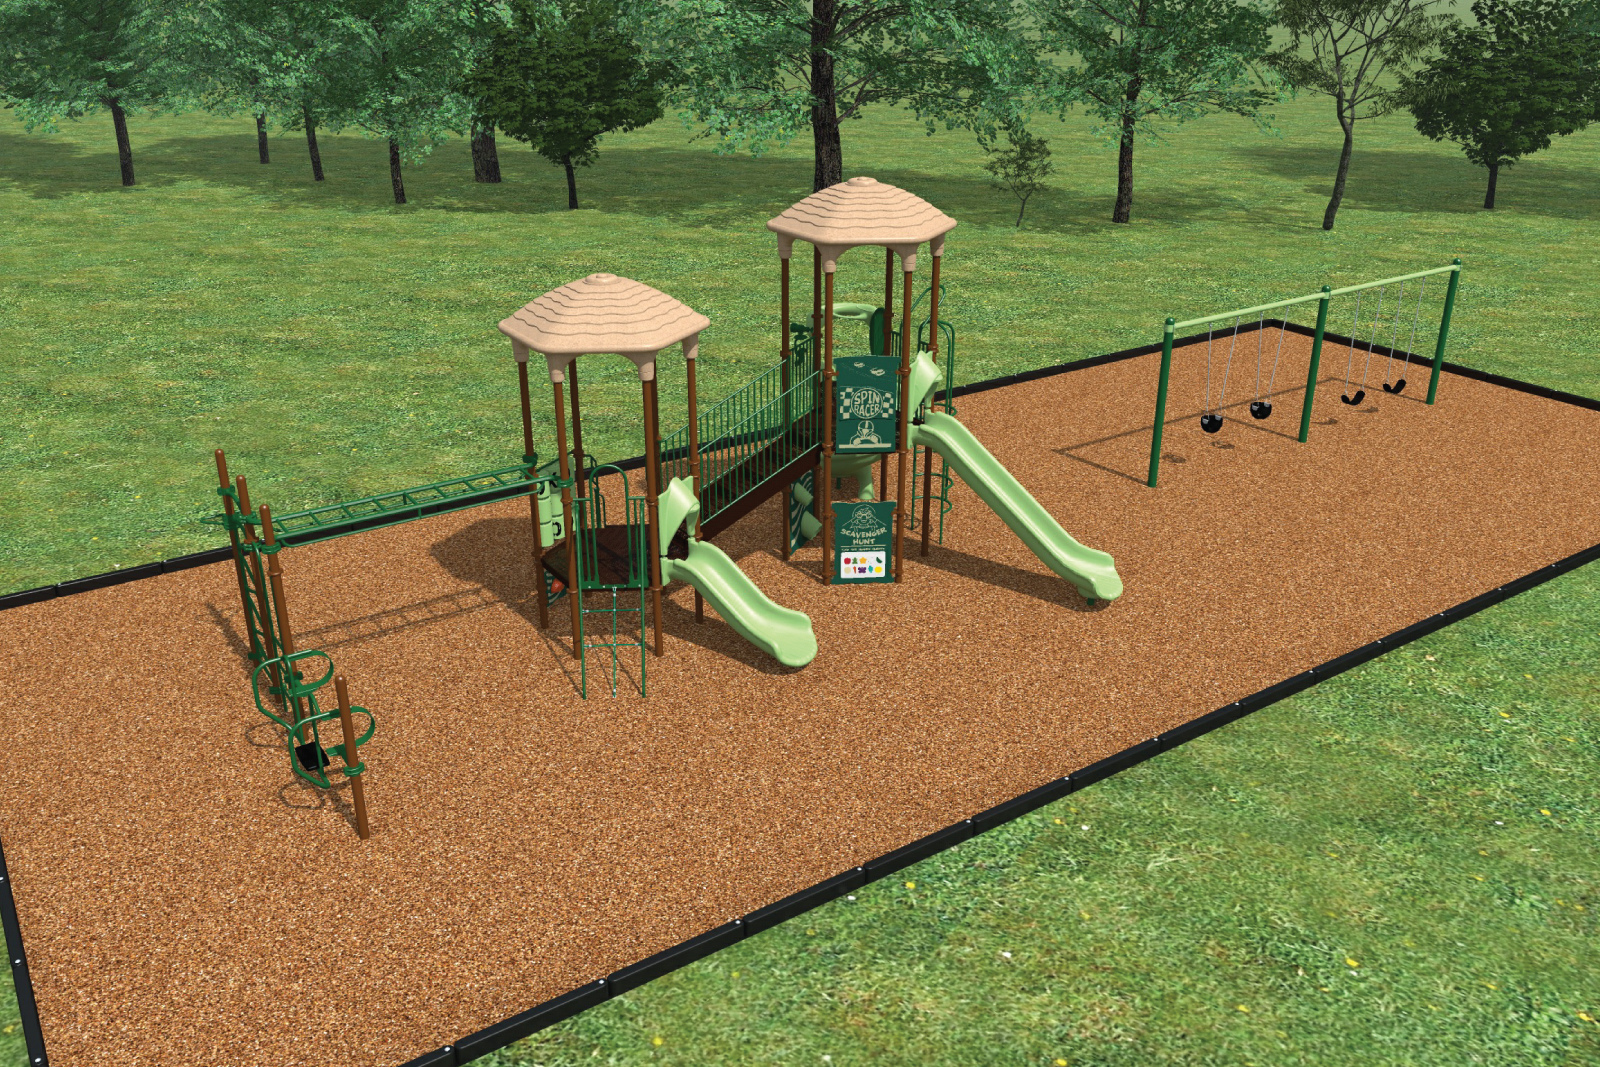 The kids will enjoy their time at a favorite community amenity–the tot-lot!